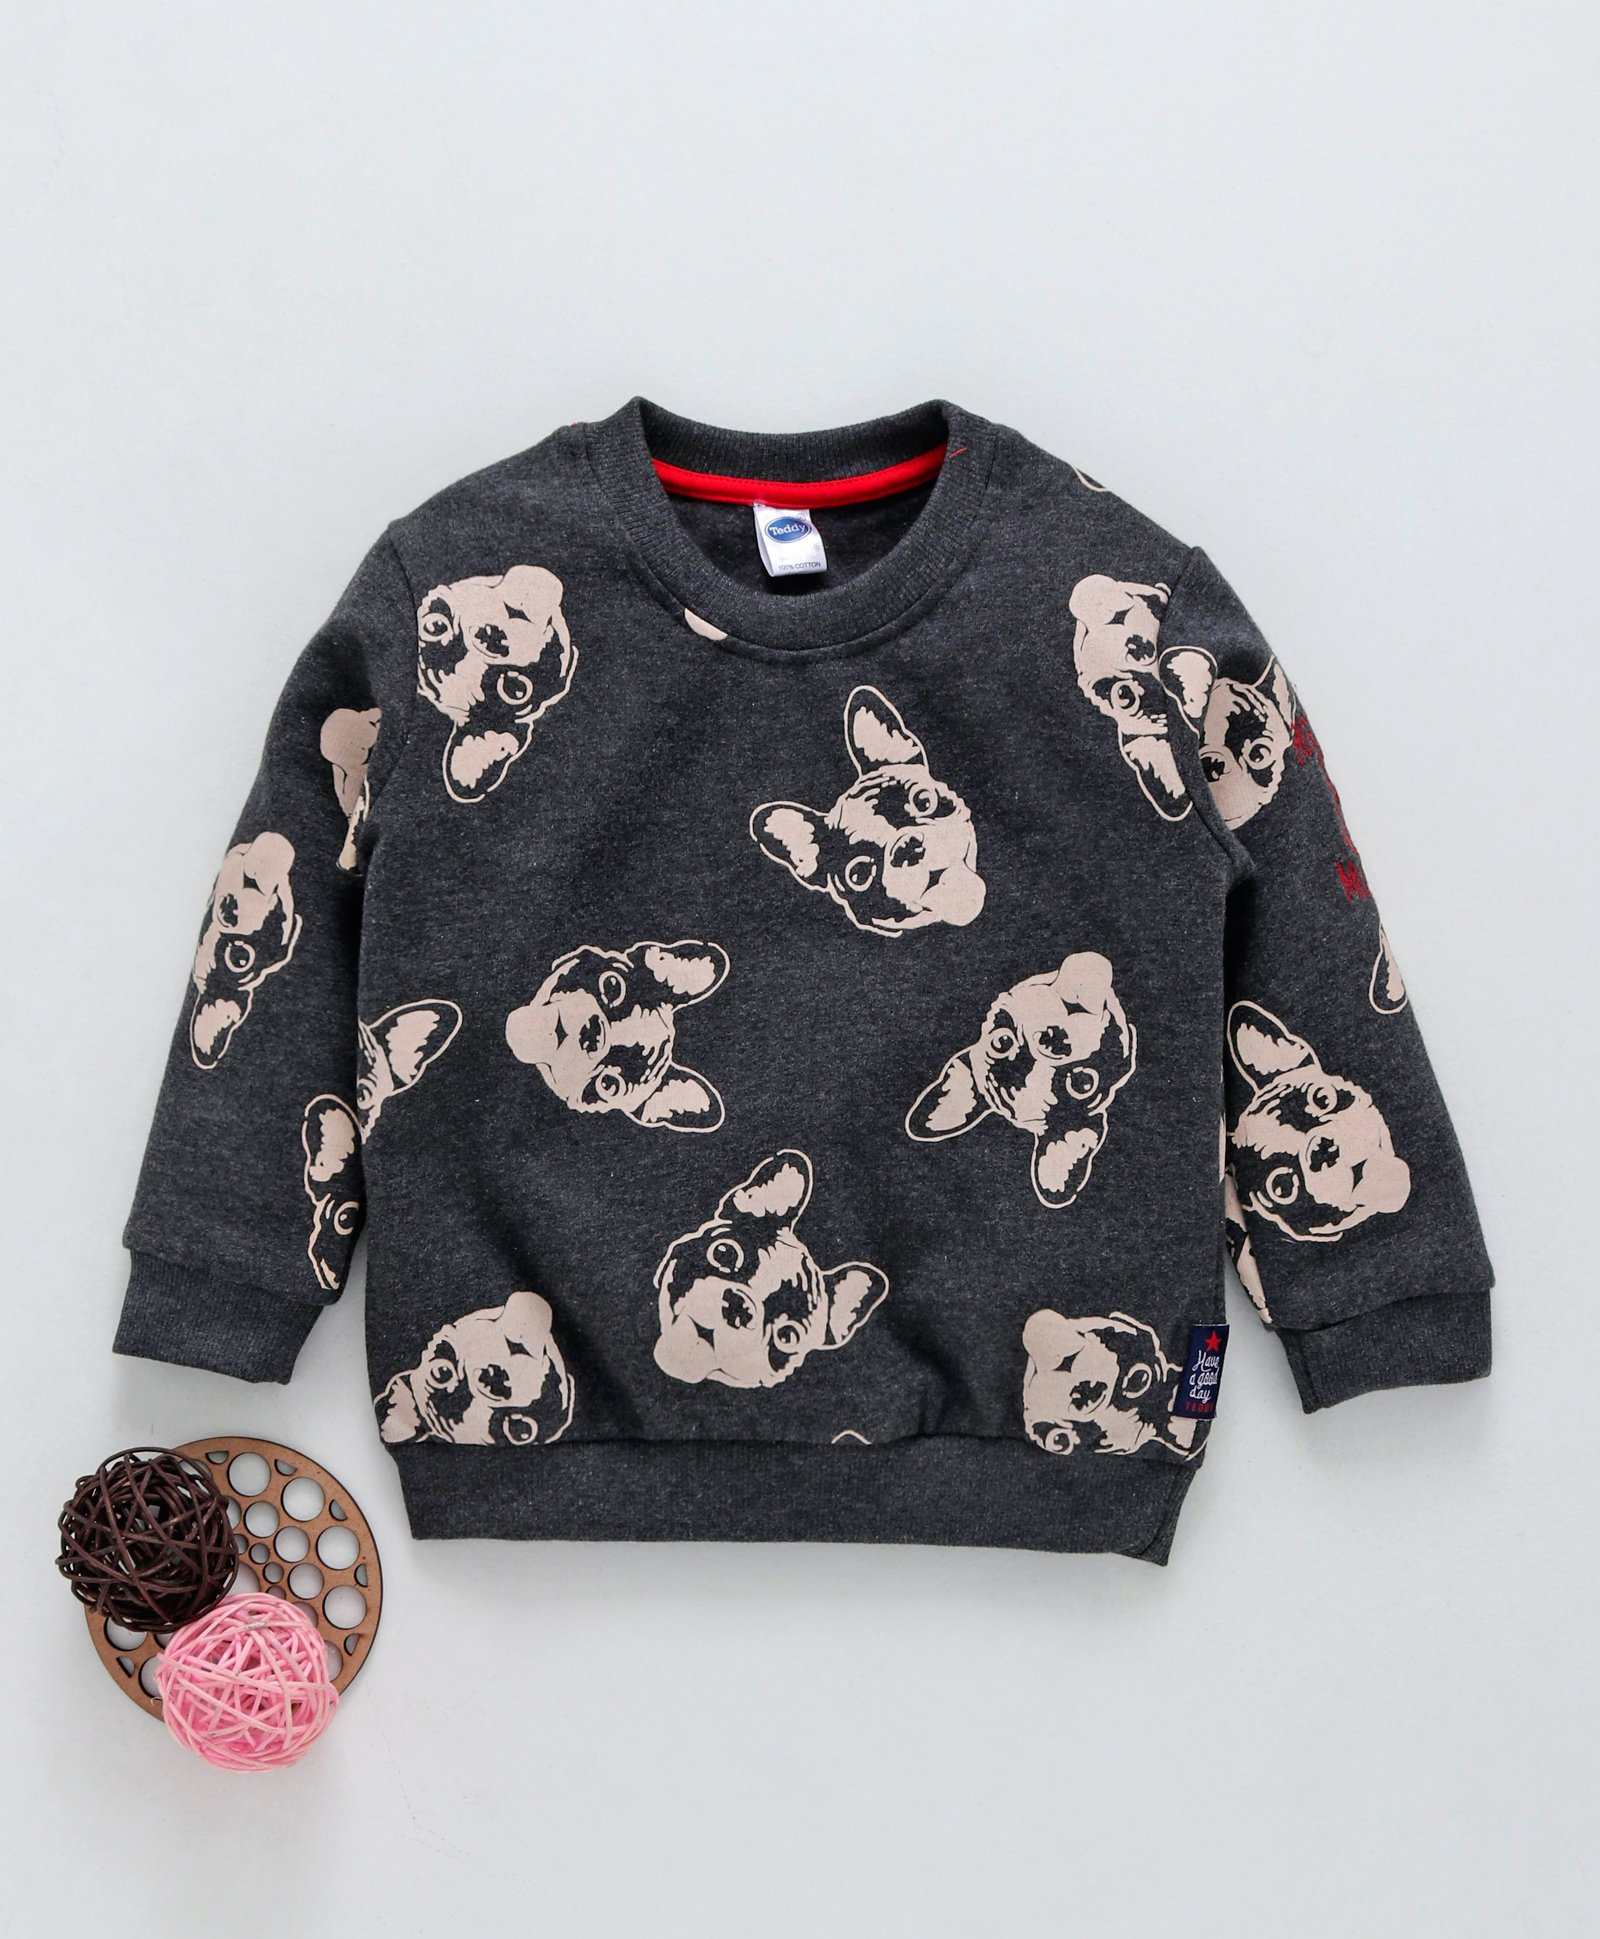 7d012b63beae Buy Teddy Winter Wear Tee Puppy Print Black for Boys (18-24 Months ...